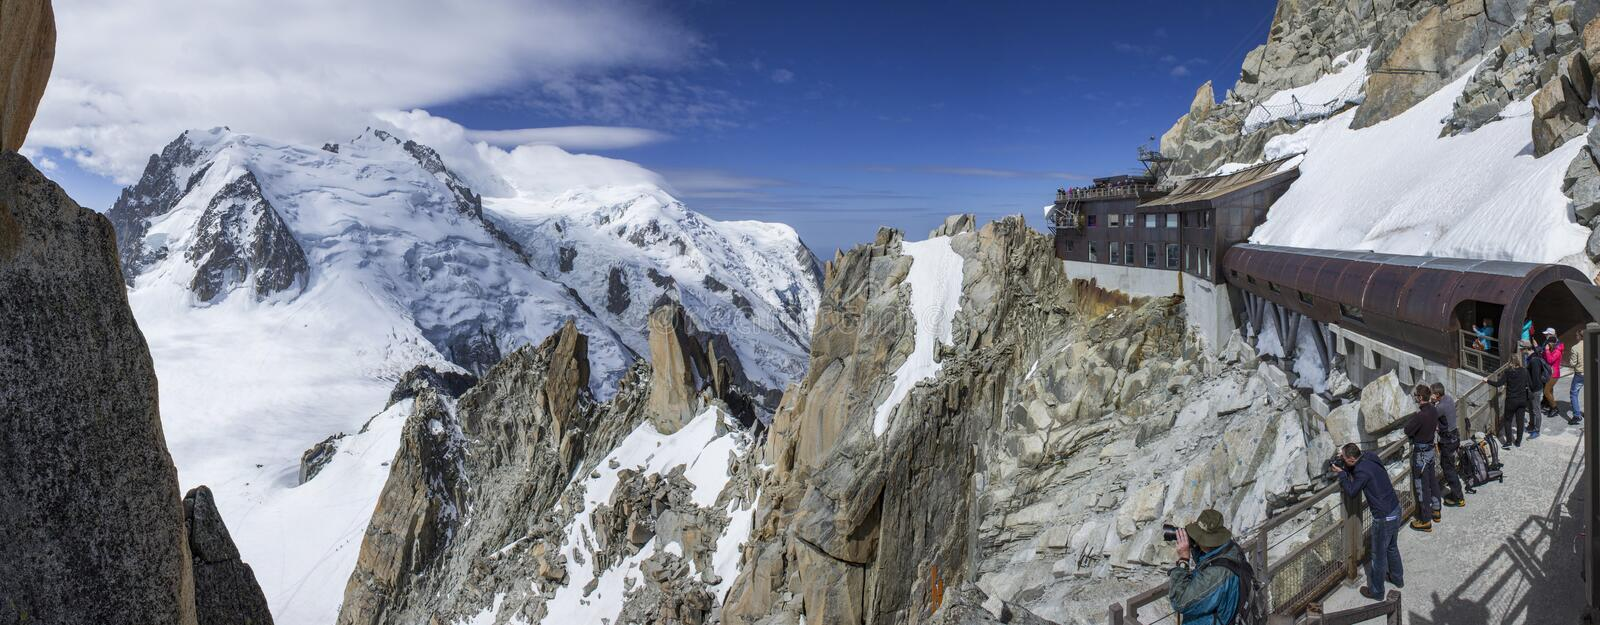 Terrasse de point de vue sur Aiguille du Midi photo stock